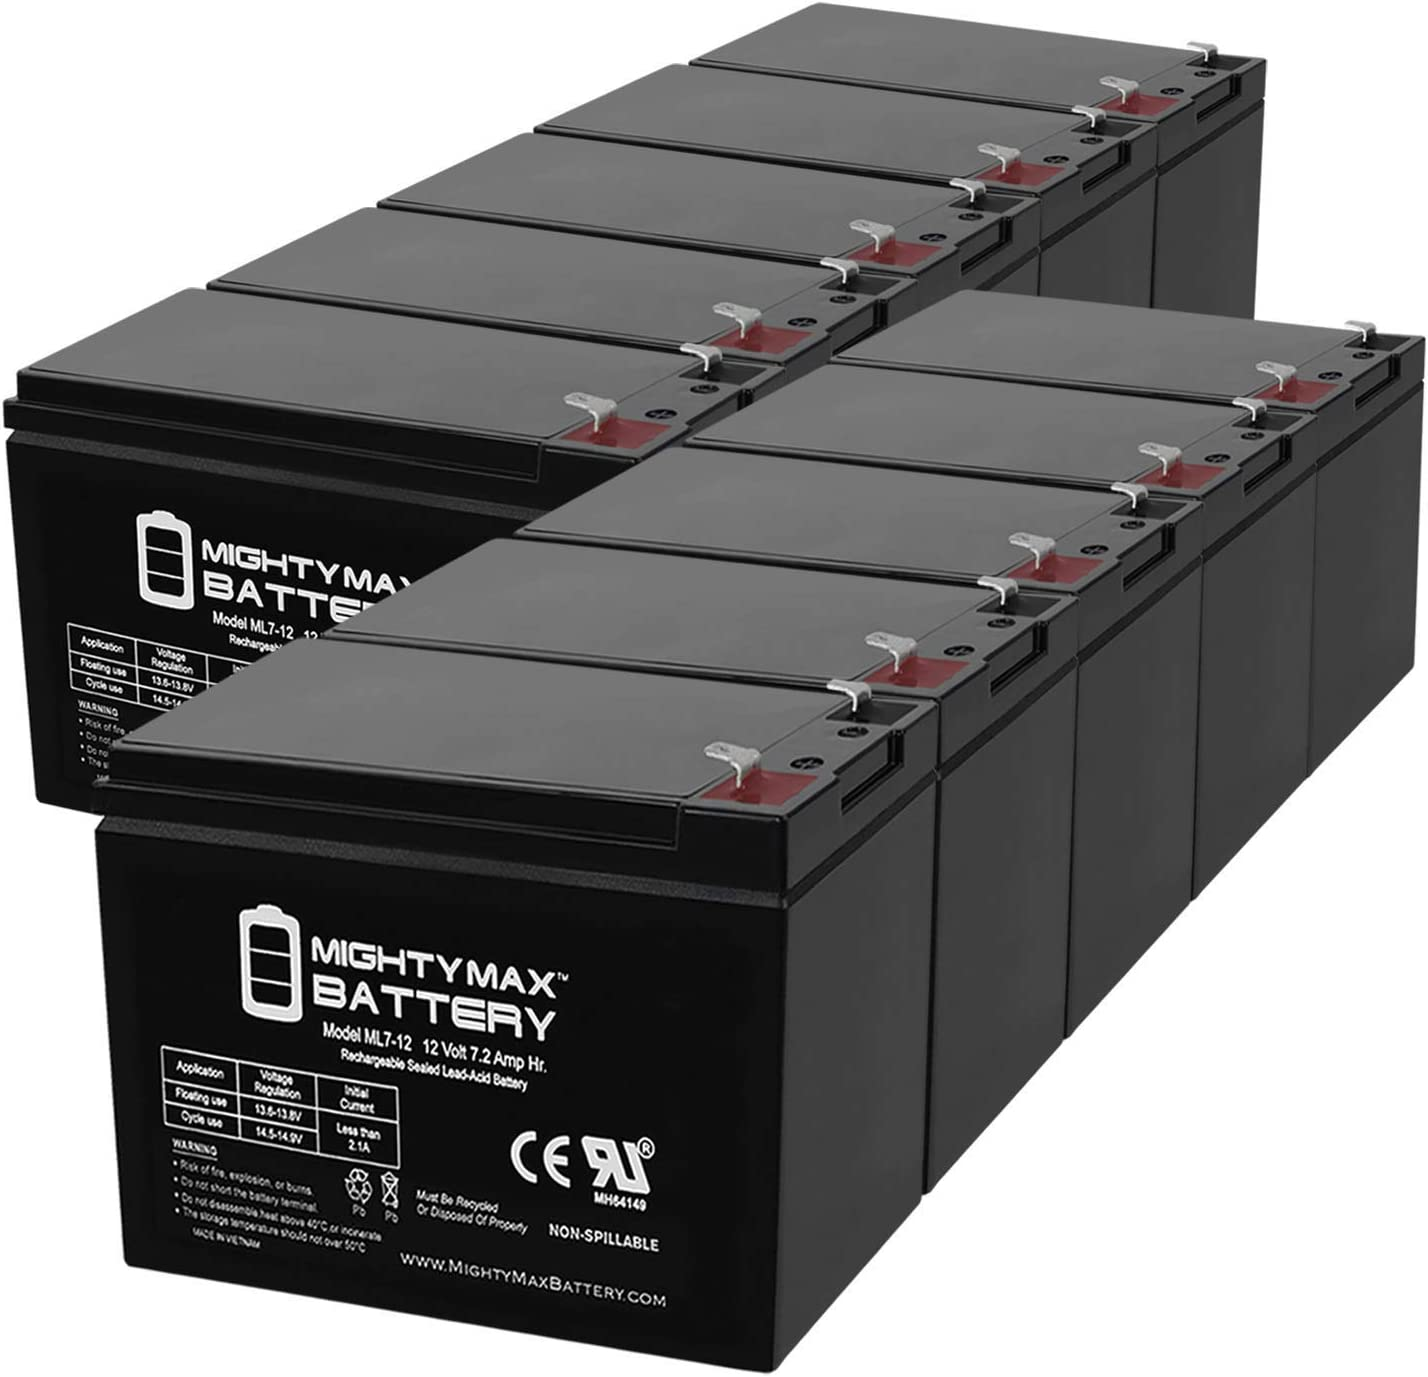 Mighty Max 2021 autumn and winter new Battery 12V 7Ah Emerson Free shipping on posting reviews for UPS200-10 UPS Pac